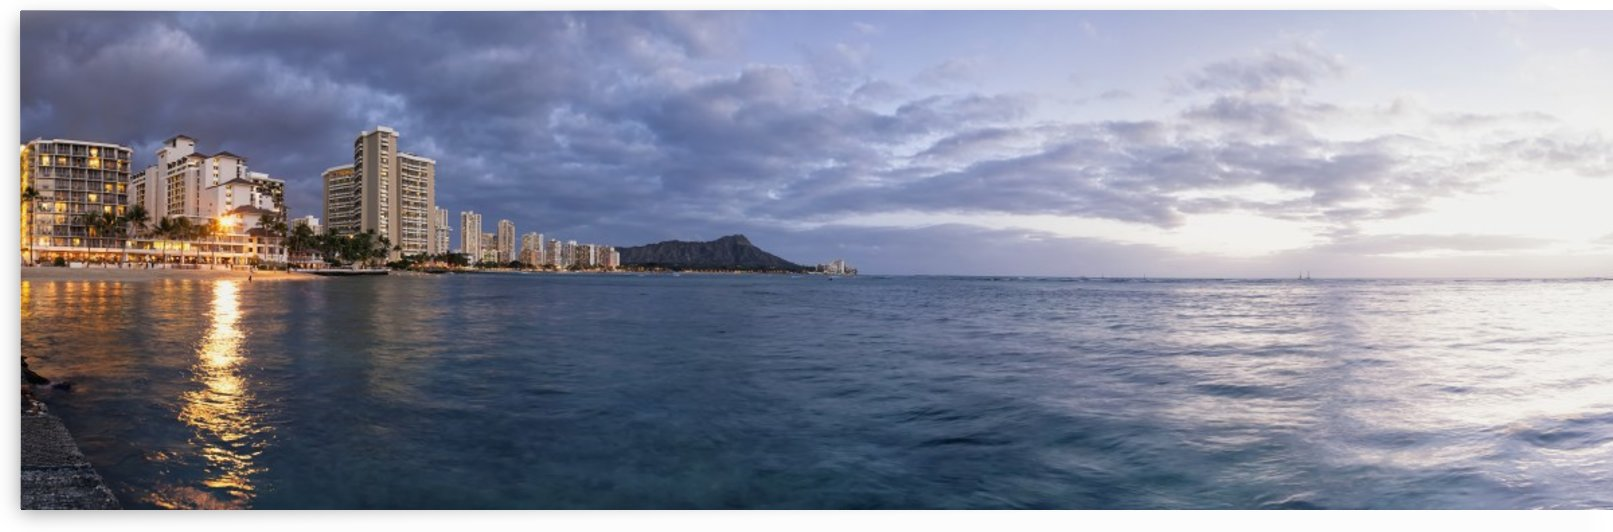 Waikiki Beach basking in the last moments of a days sunlight; Honolulu, Oahu, Hawaii, United States of America by PacificStock